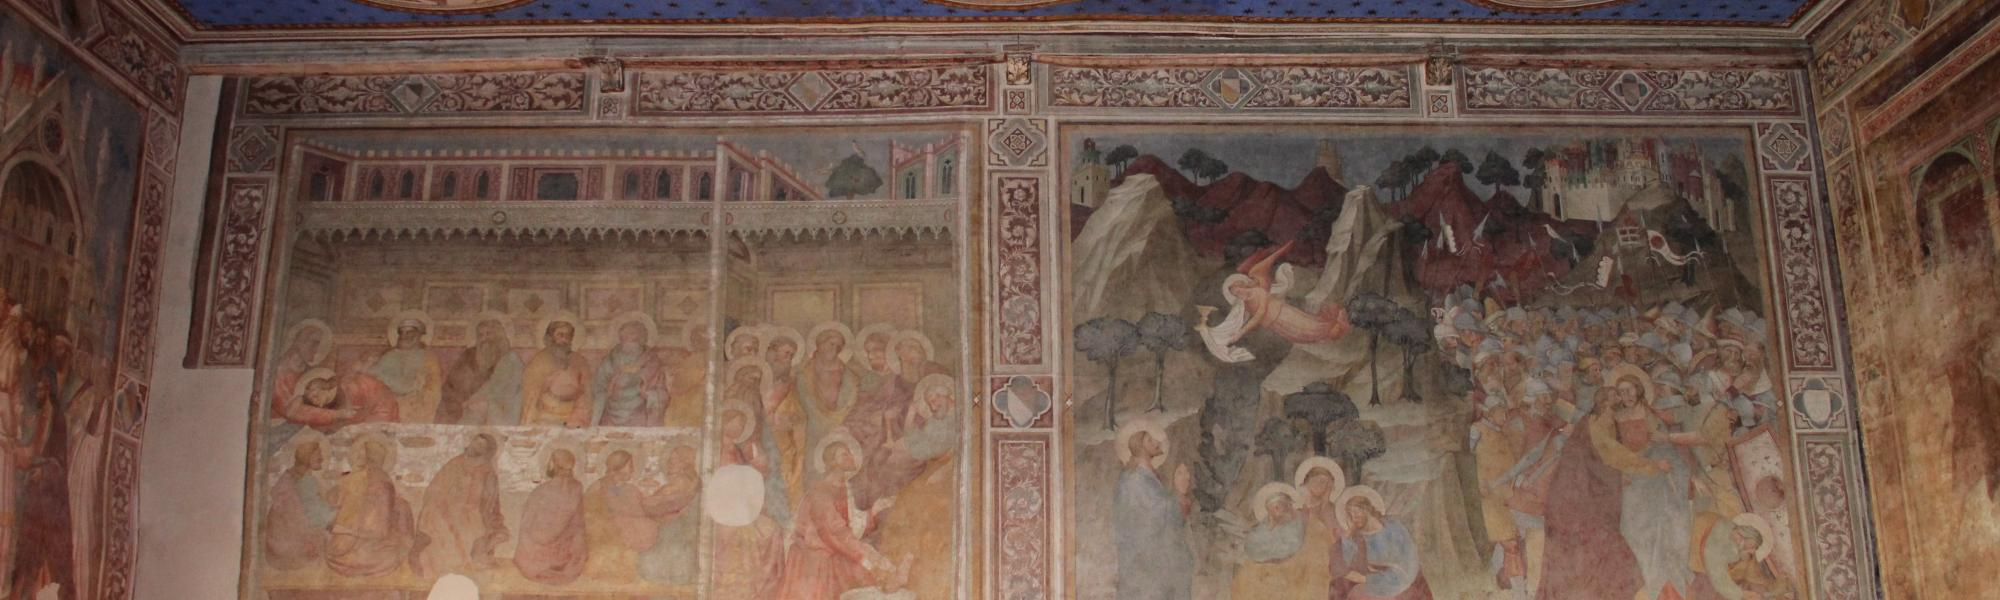 Decorazione interna Chiesa di San Francesco (G. Bettini, Comune di Pisa)